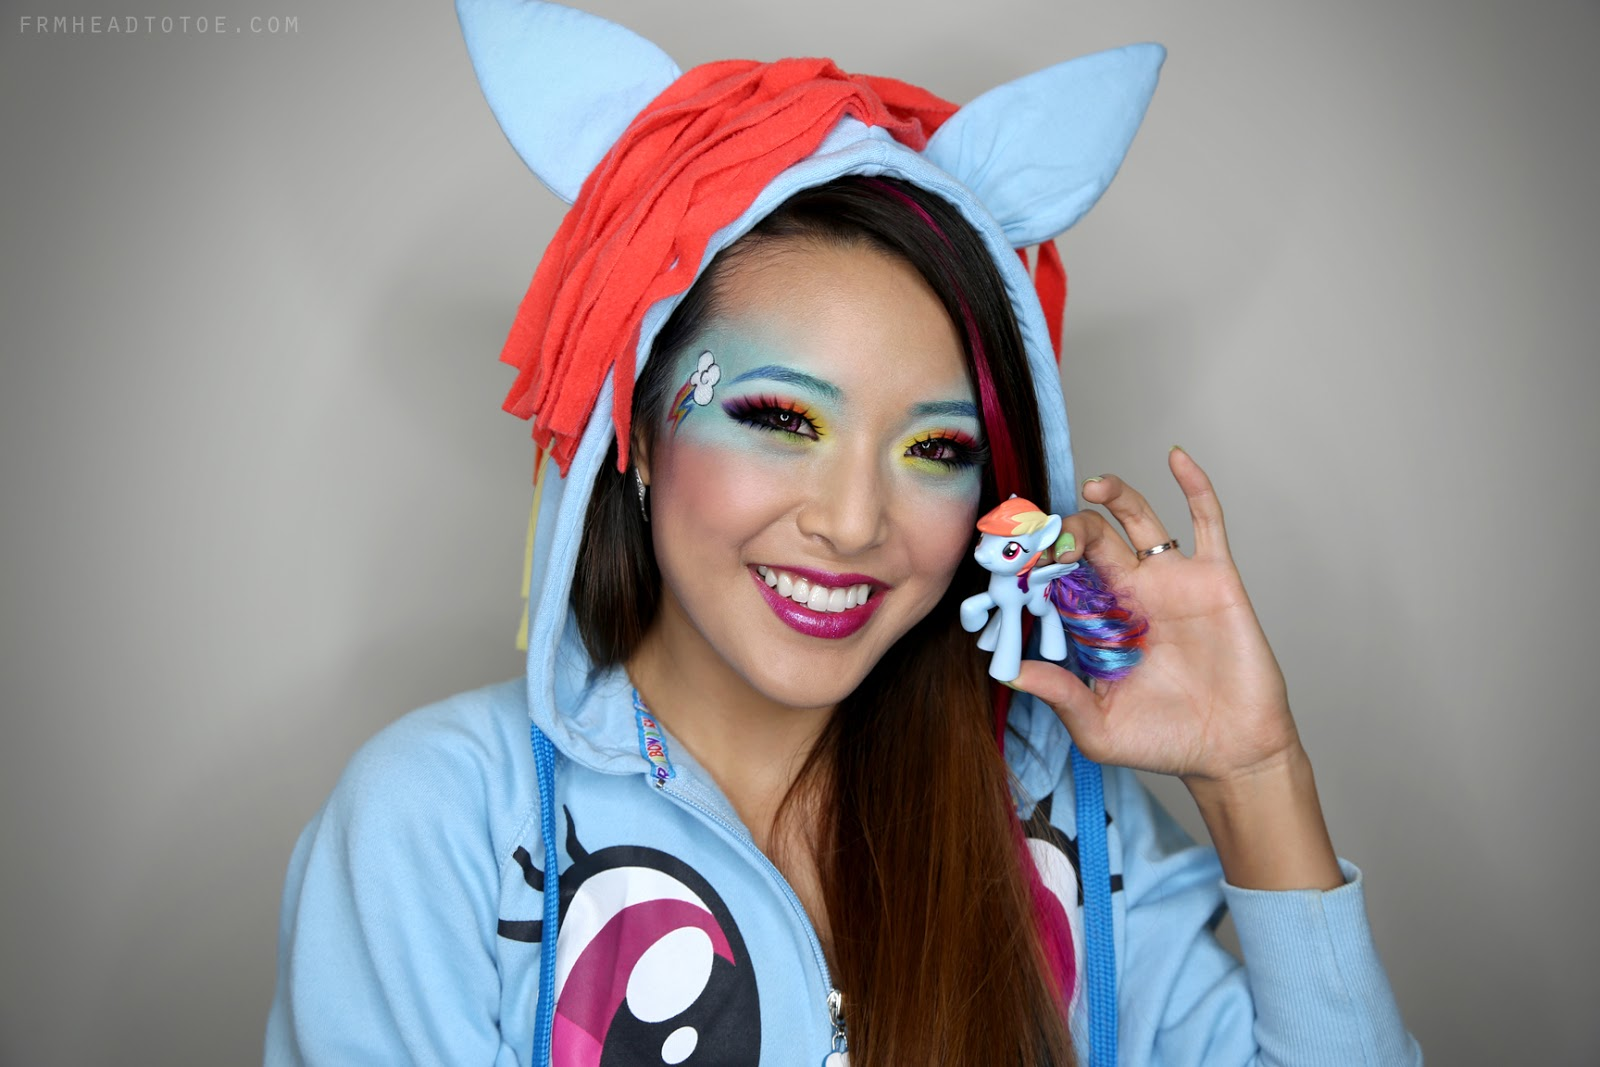 My little ponies quot rainbow dash quot makeup tutorial from head to toe